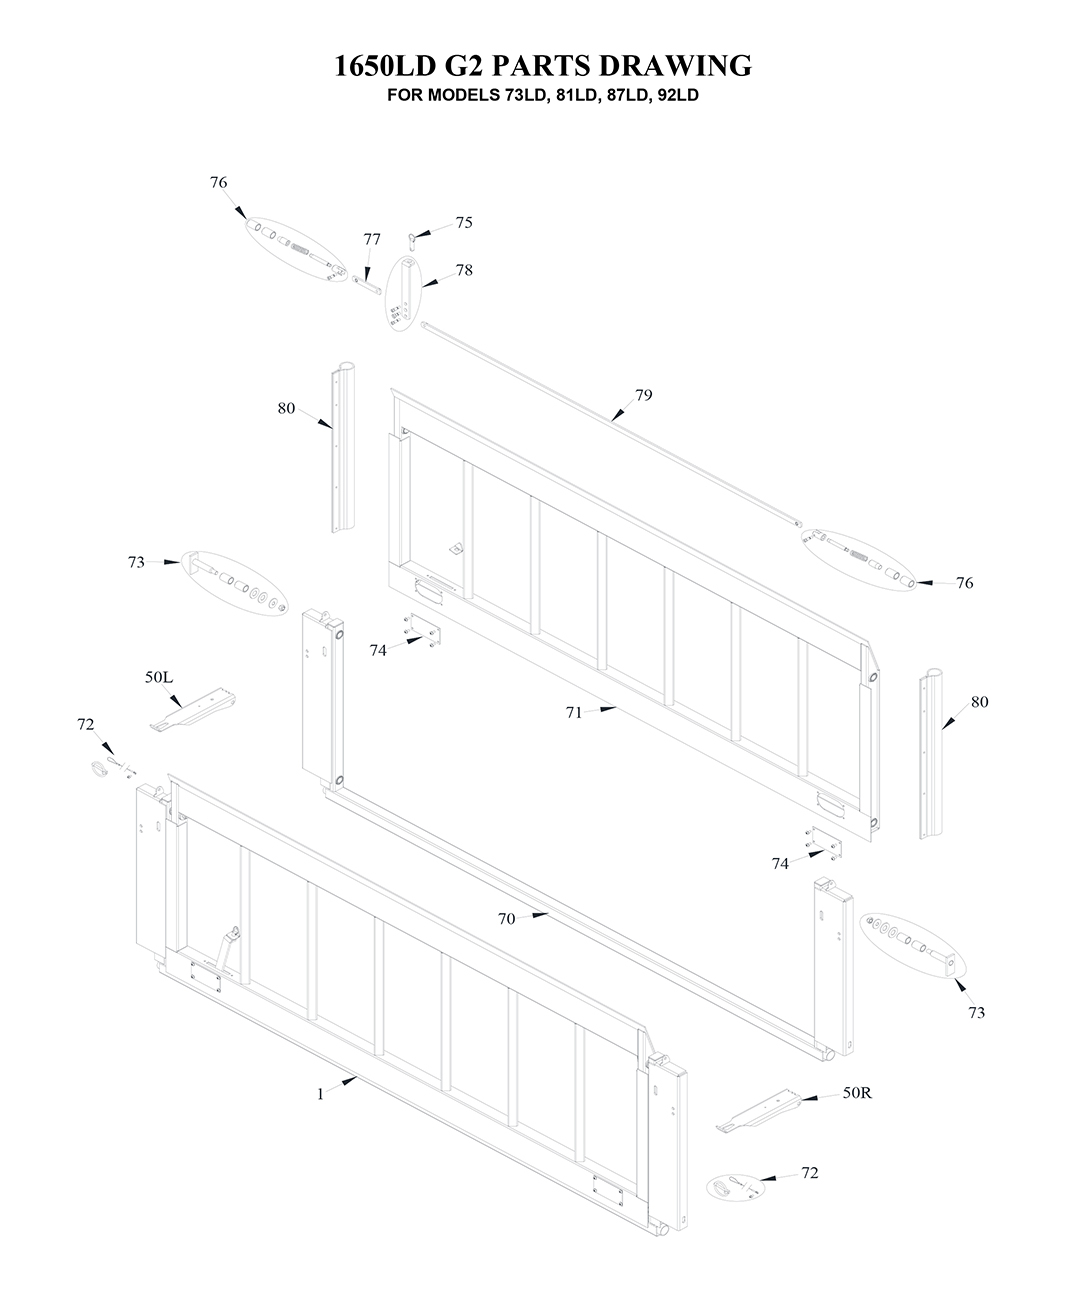 liftgate diagrams tommy gate liftgate parts diagrams shop ite tommy gate g2 series lift and dump diagram flatbed stake van